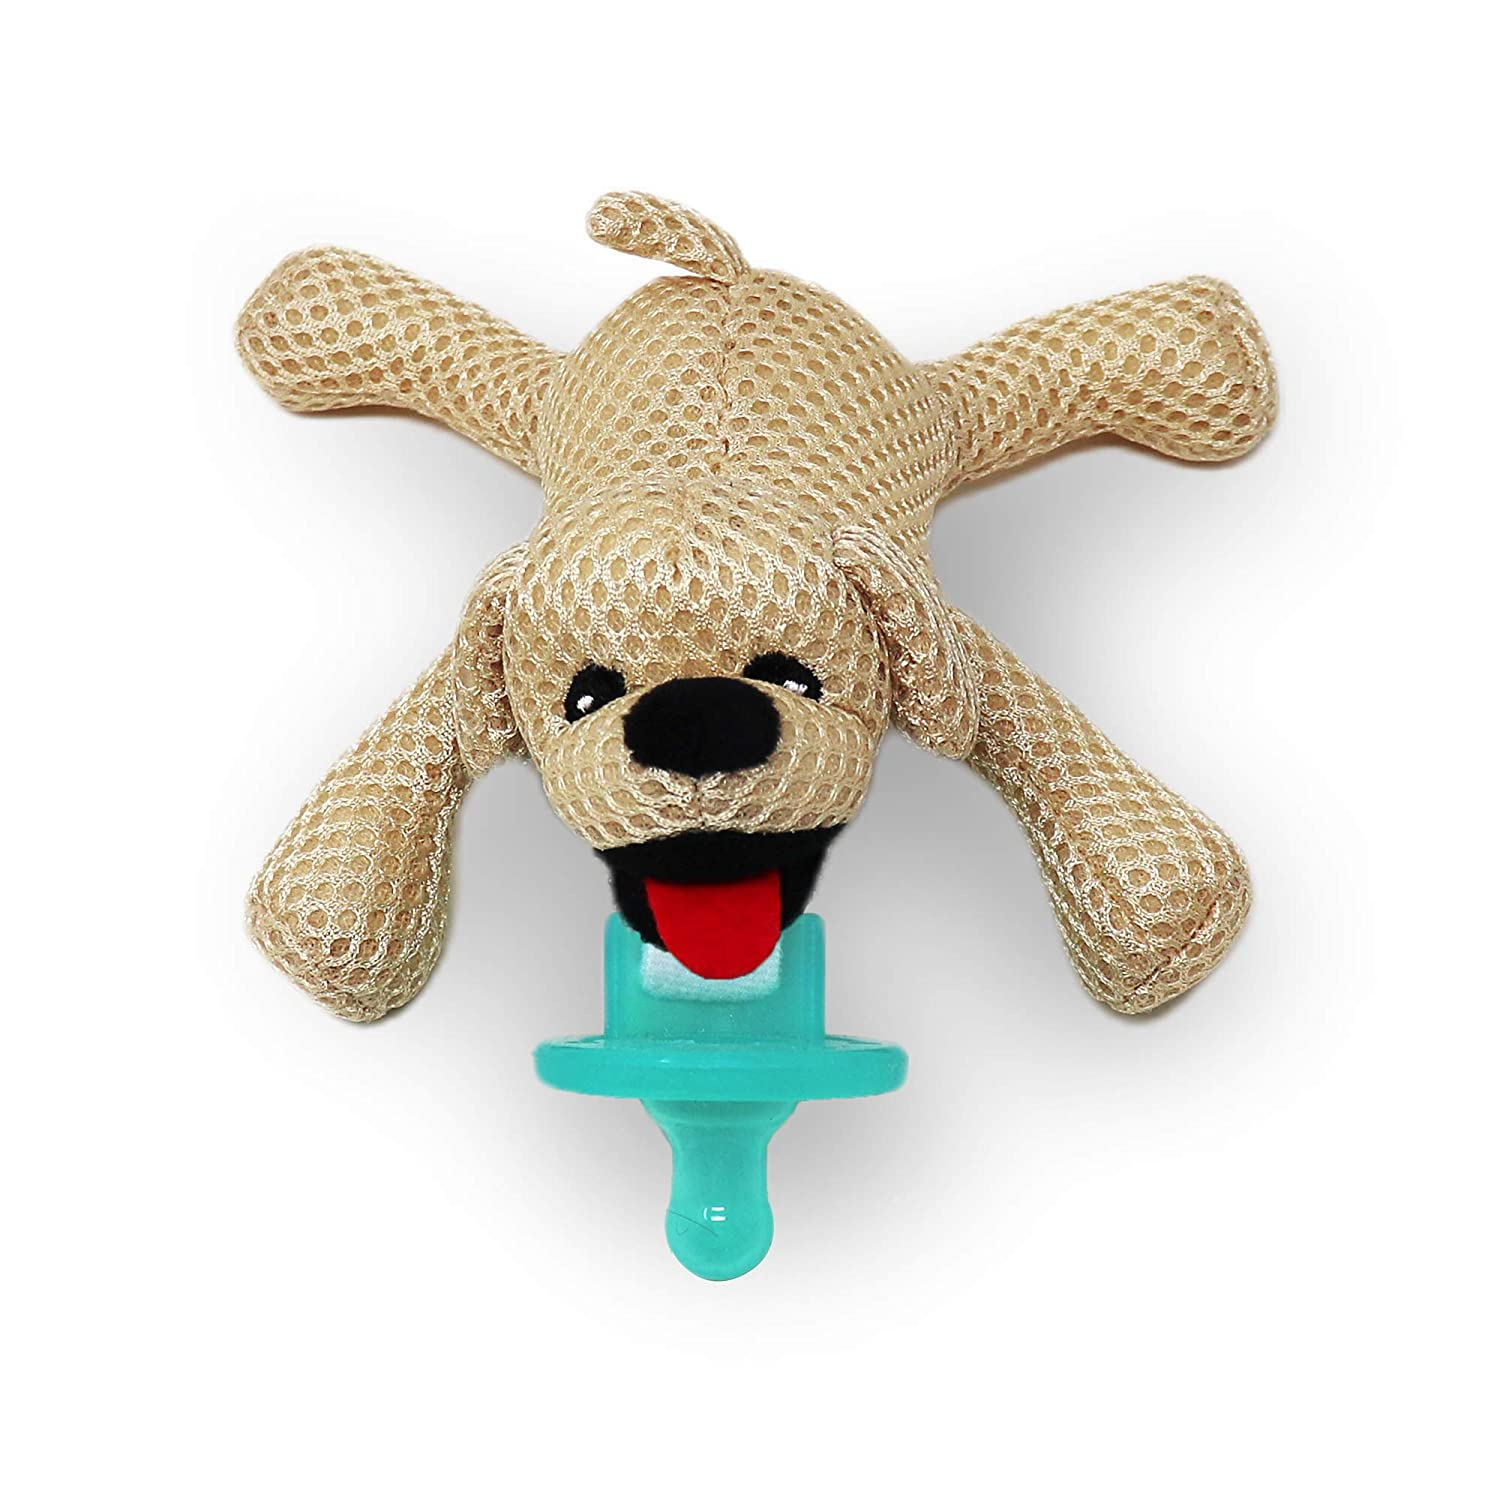 Baby Works - Pacifier Holder, Includes Removable Pacifier, Plush Toy Breathable Fabric - Bud The Puppy